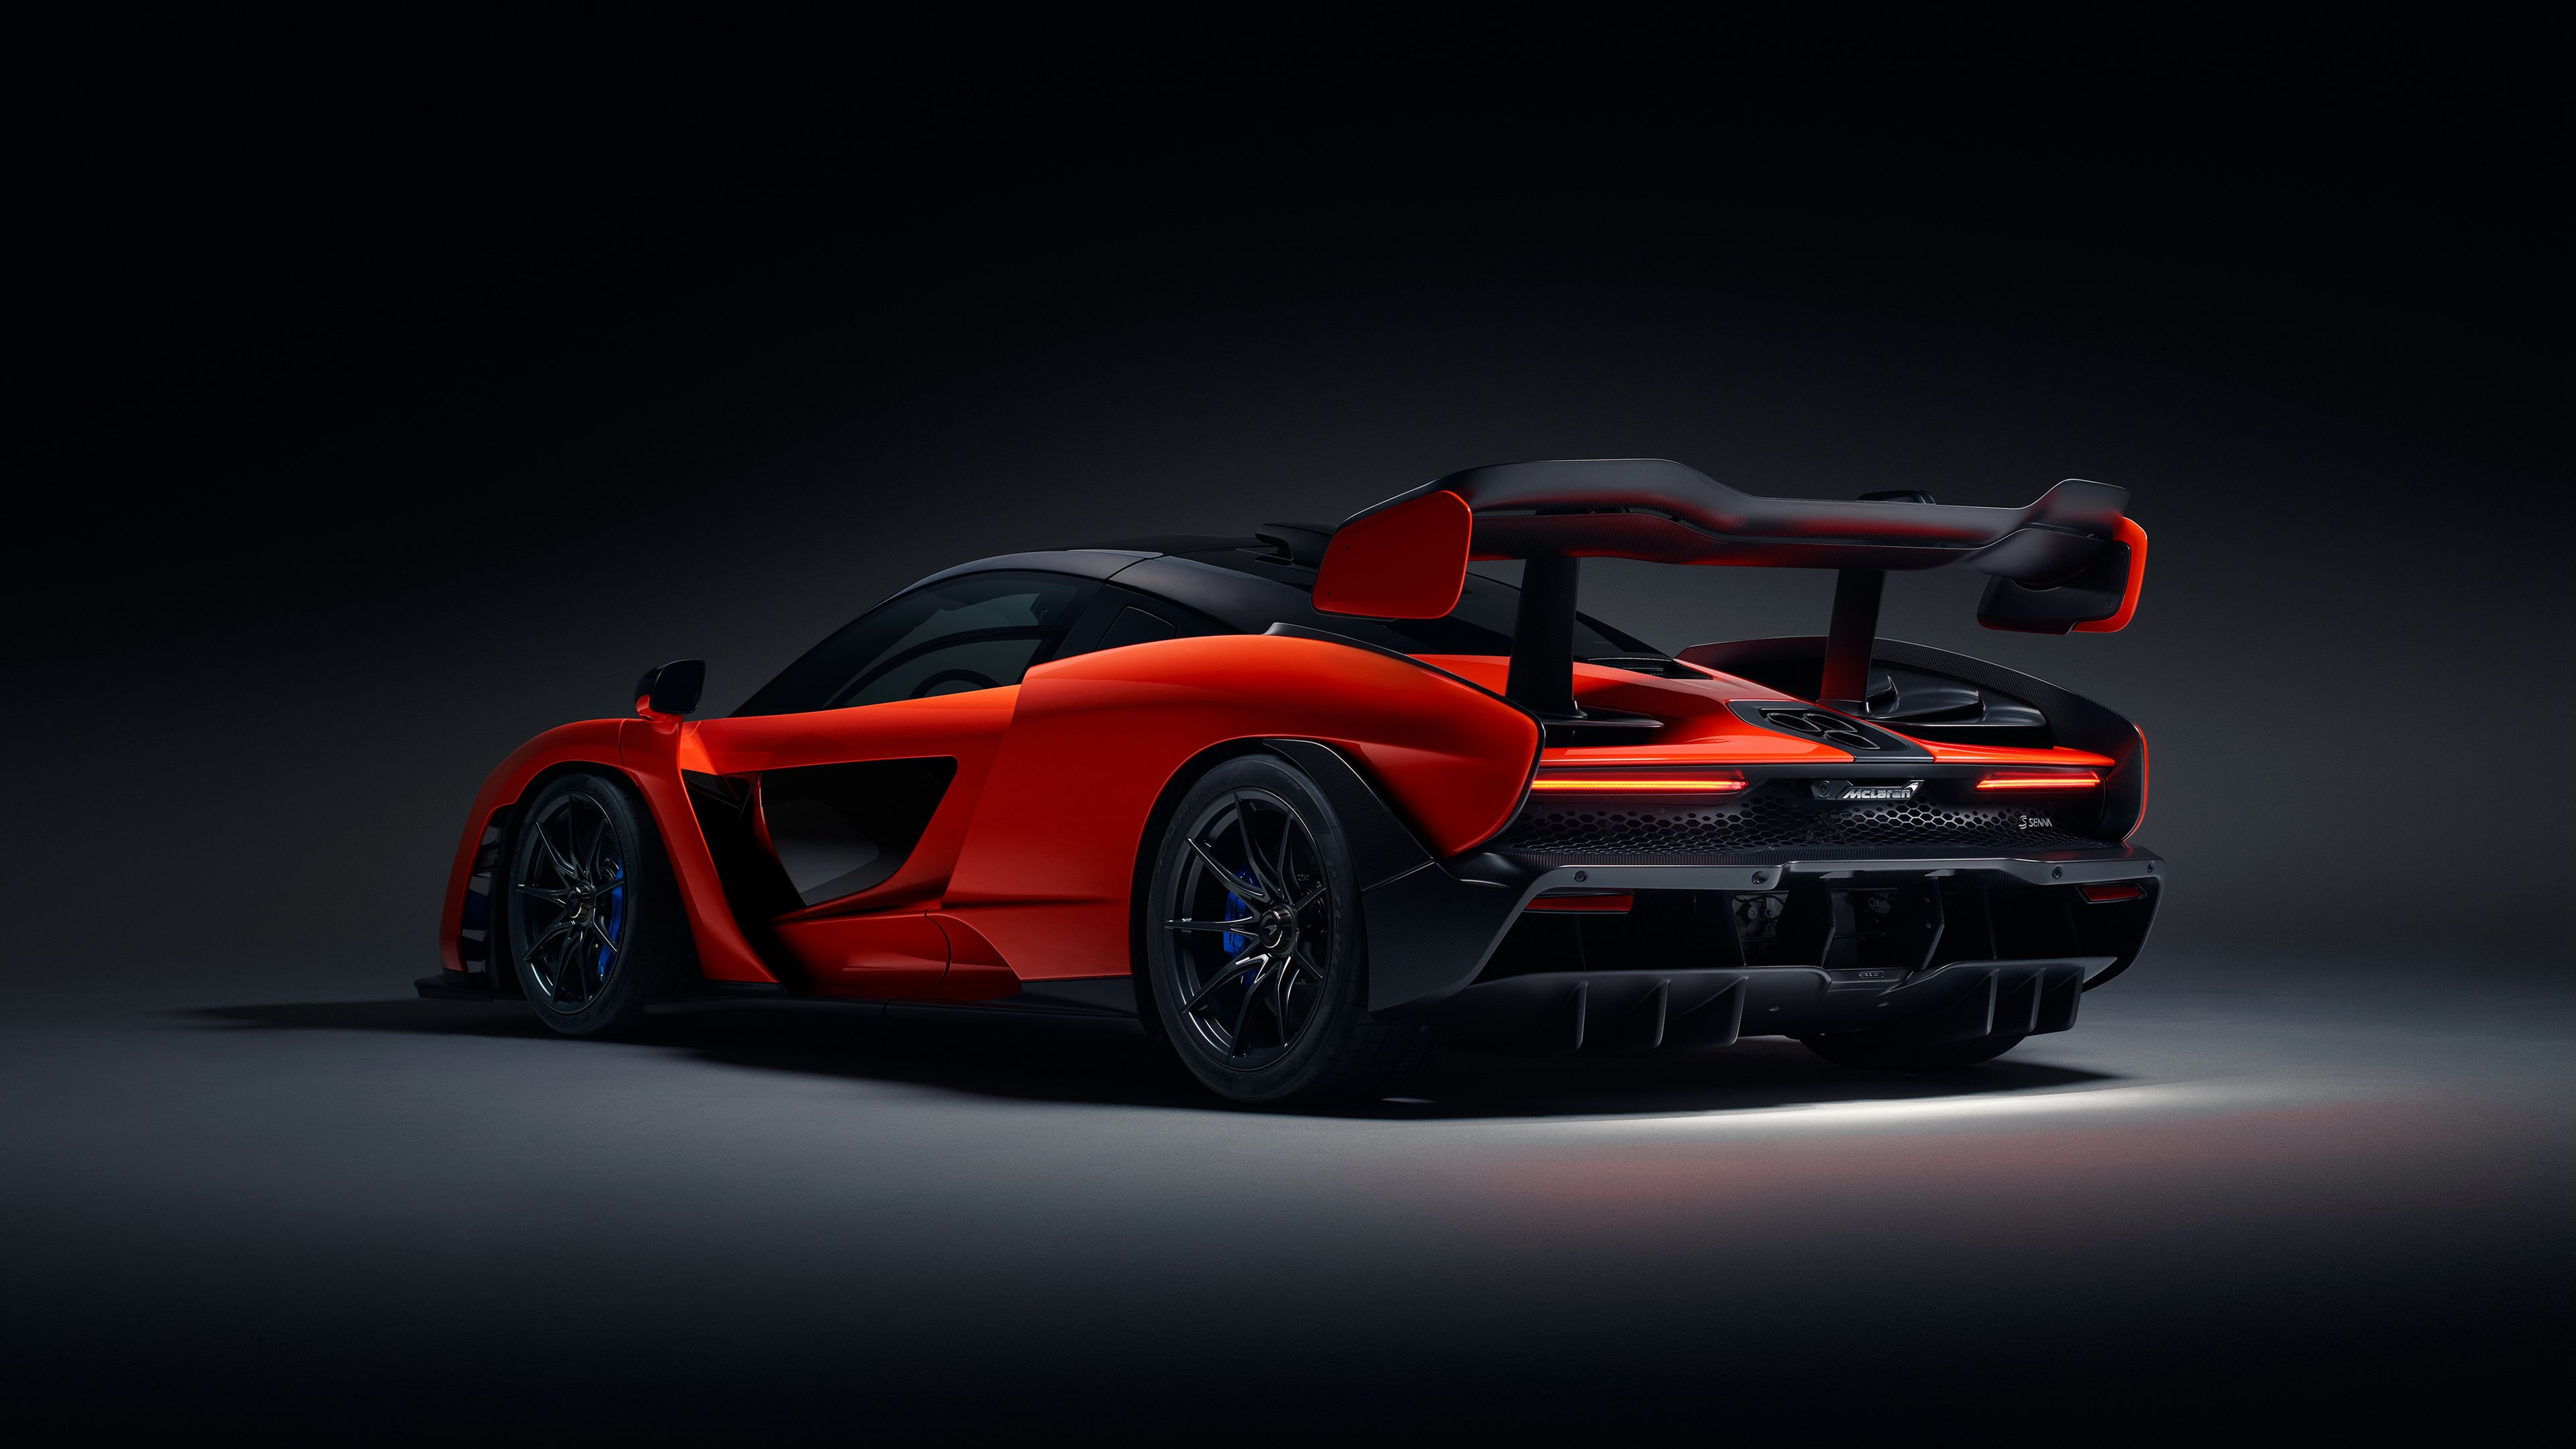 Mclaren Senna Rear Lights View 4k Mclaren Wallpapers Mclaren Senna Wallpapers Hd Wallpapers 4k Wallpapers 2018 Cars New Mclaren Mclaren Road Car Super Cars